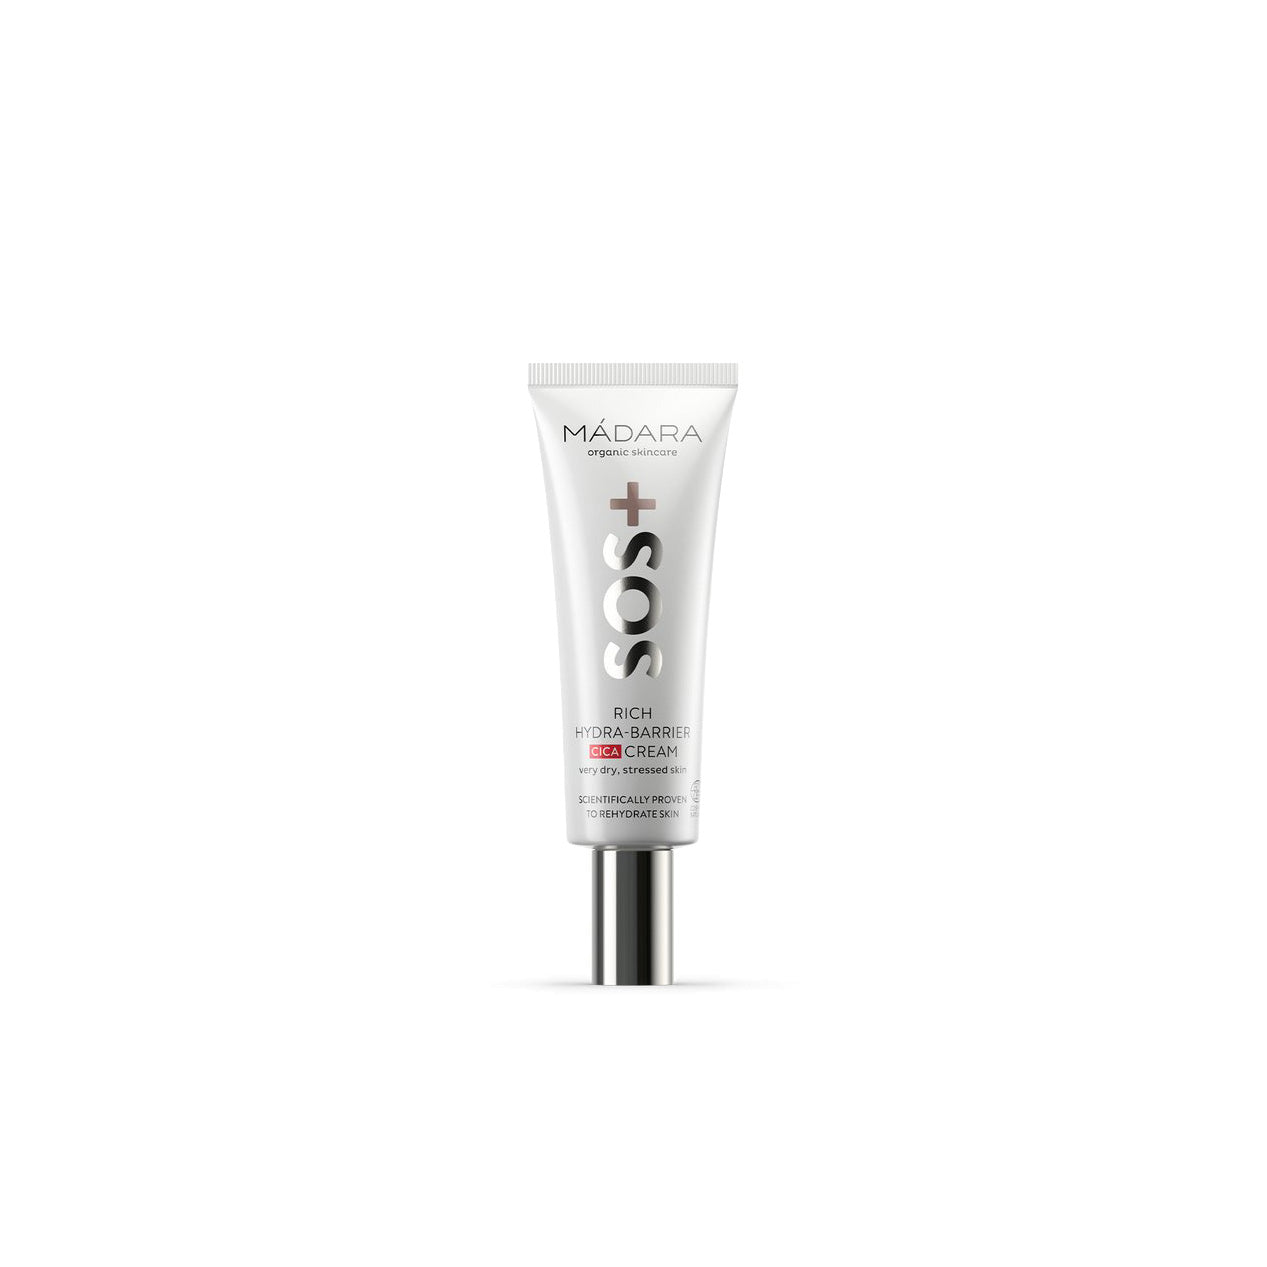 SOS+ Rich Hydra-Barrier CICA Cream 40ml